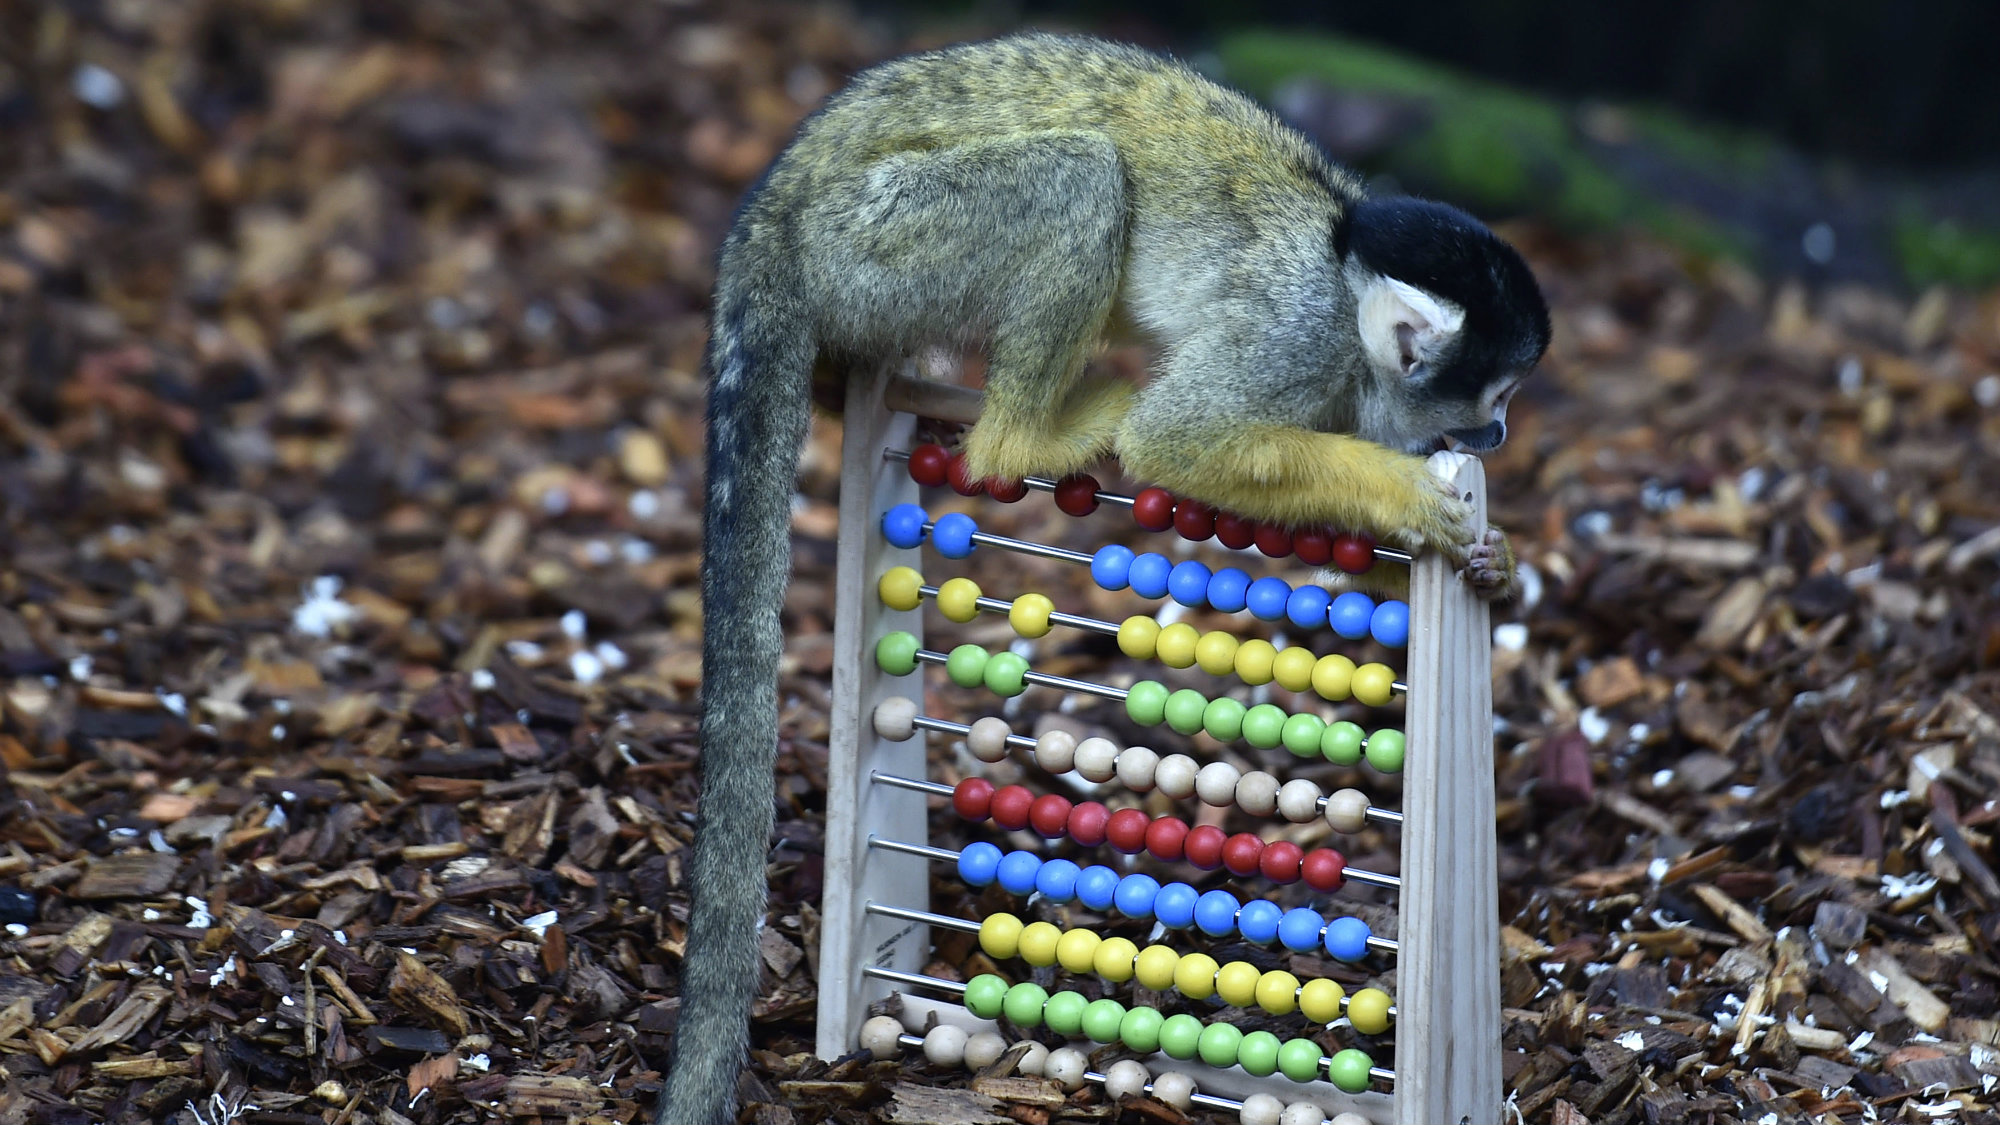 A black-capped squirrel monkey sits on an abacus during the stock take at London Zoo in London